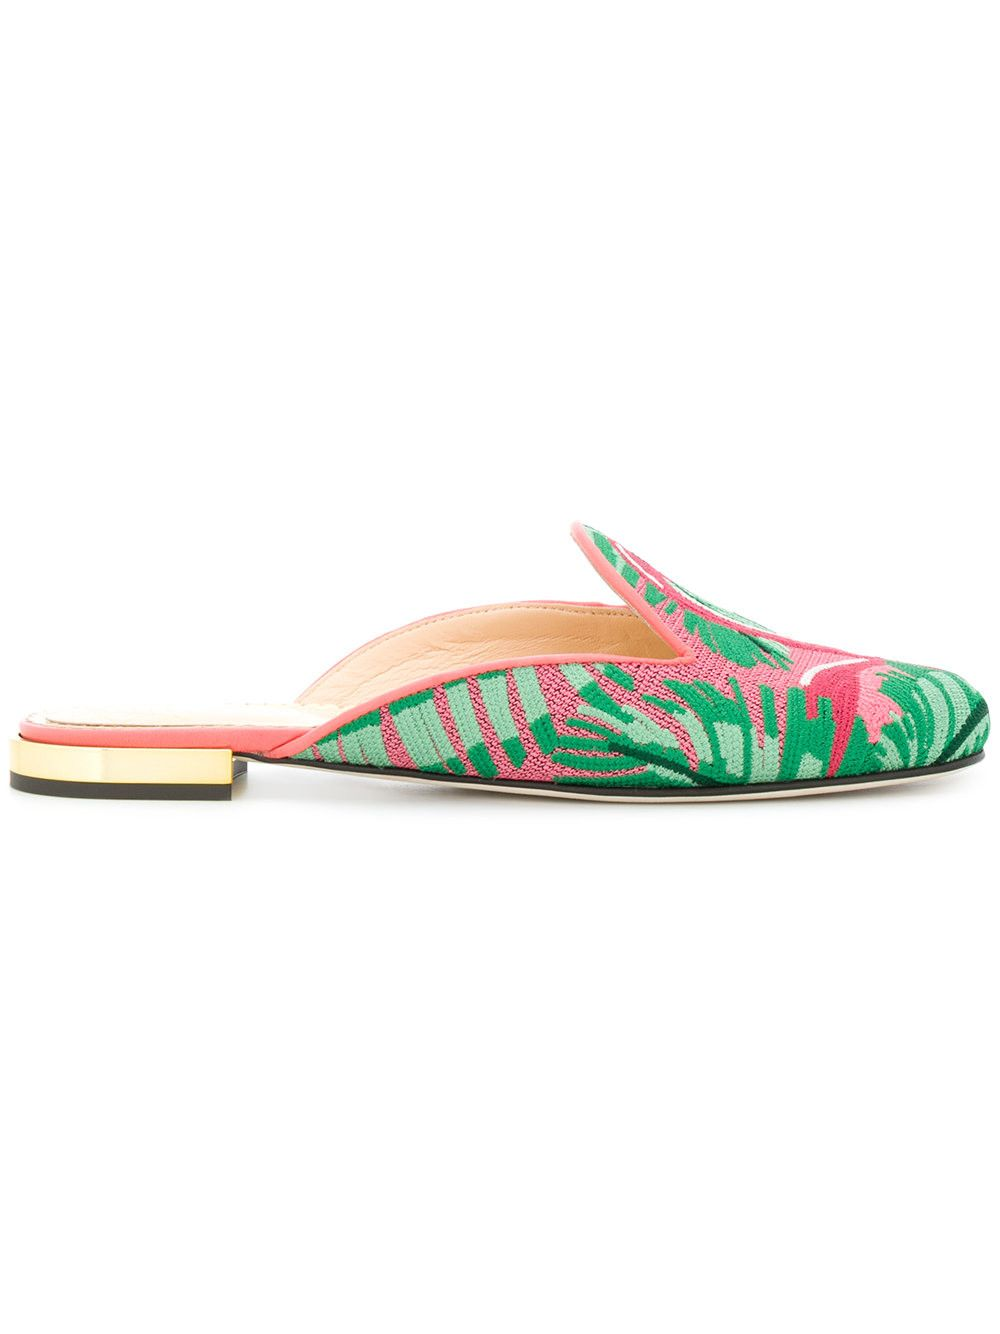 CHARLOTTE OLYMPIA Flamingo print flat mules.  charlotteolympia  shoes   eaca6c7c7